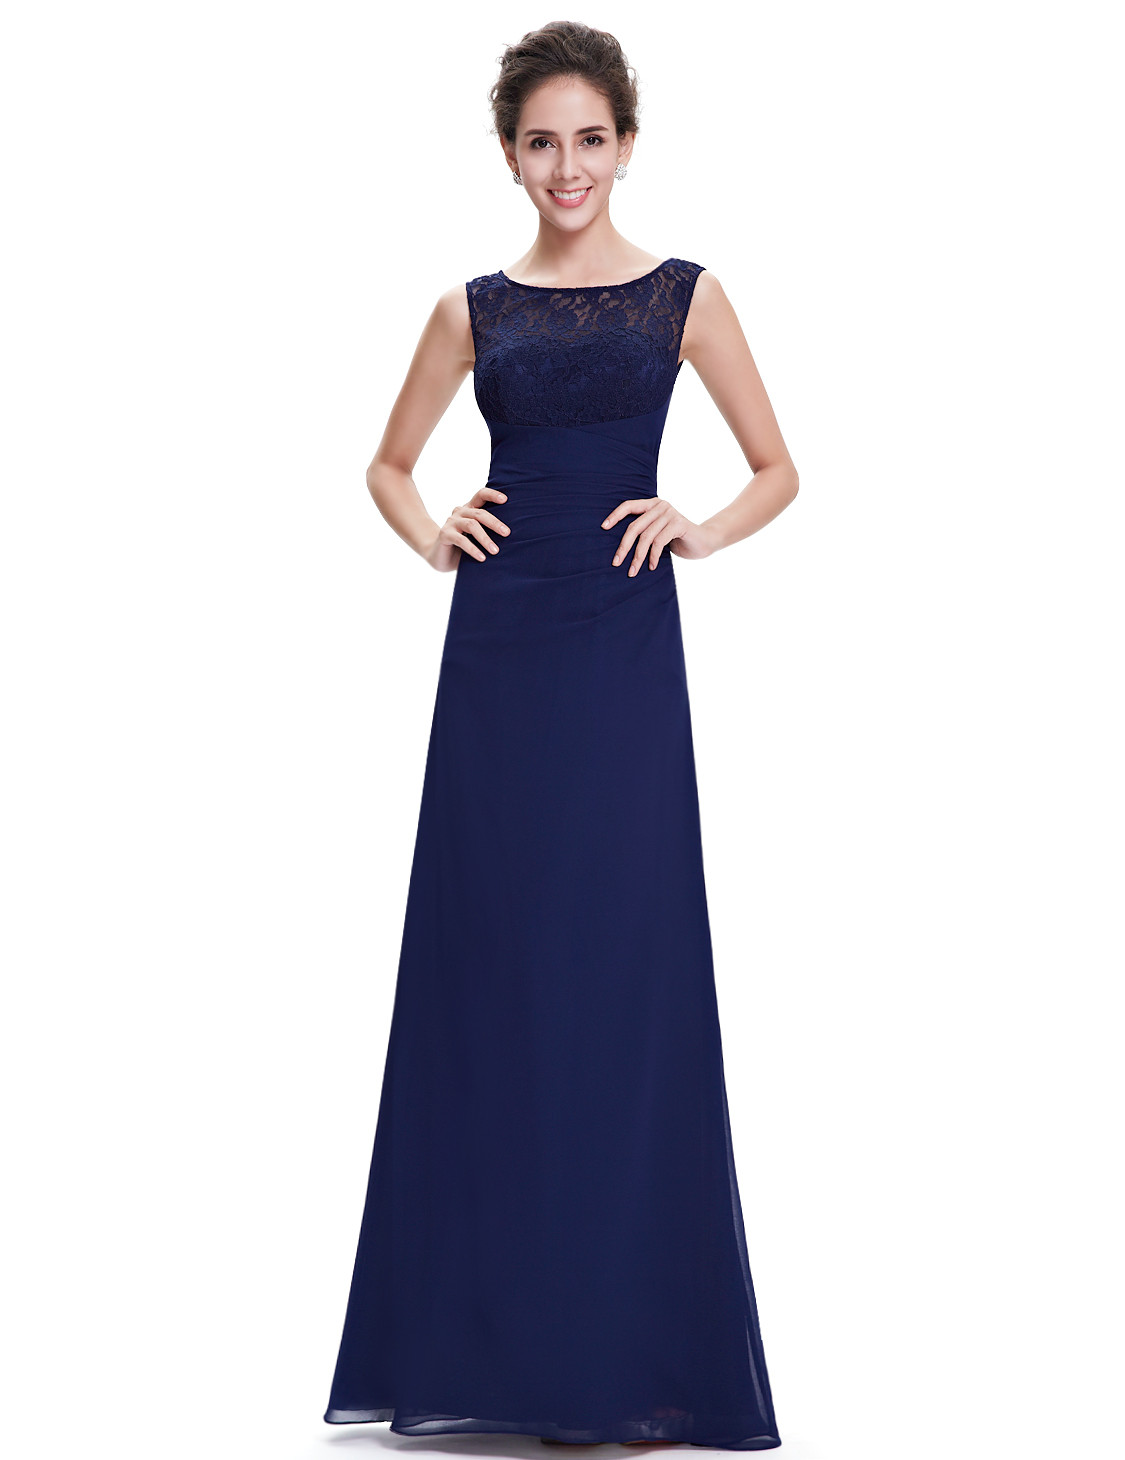 October Bridesmaid Dresses